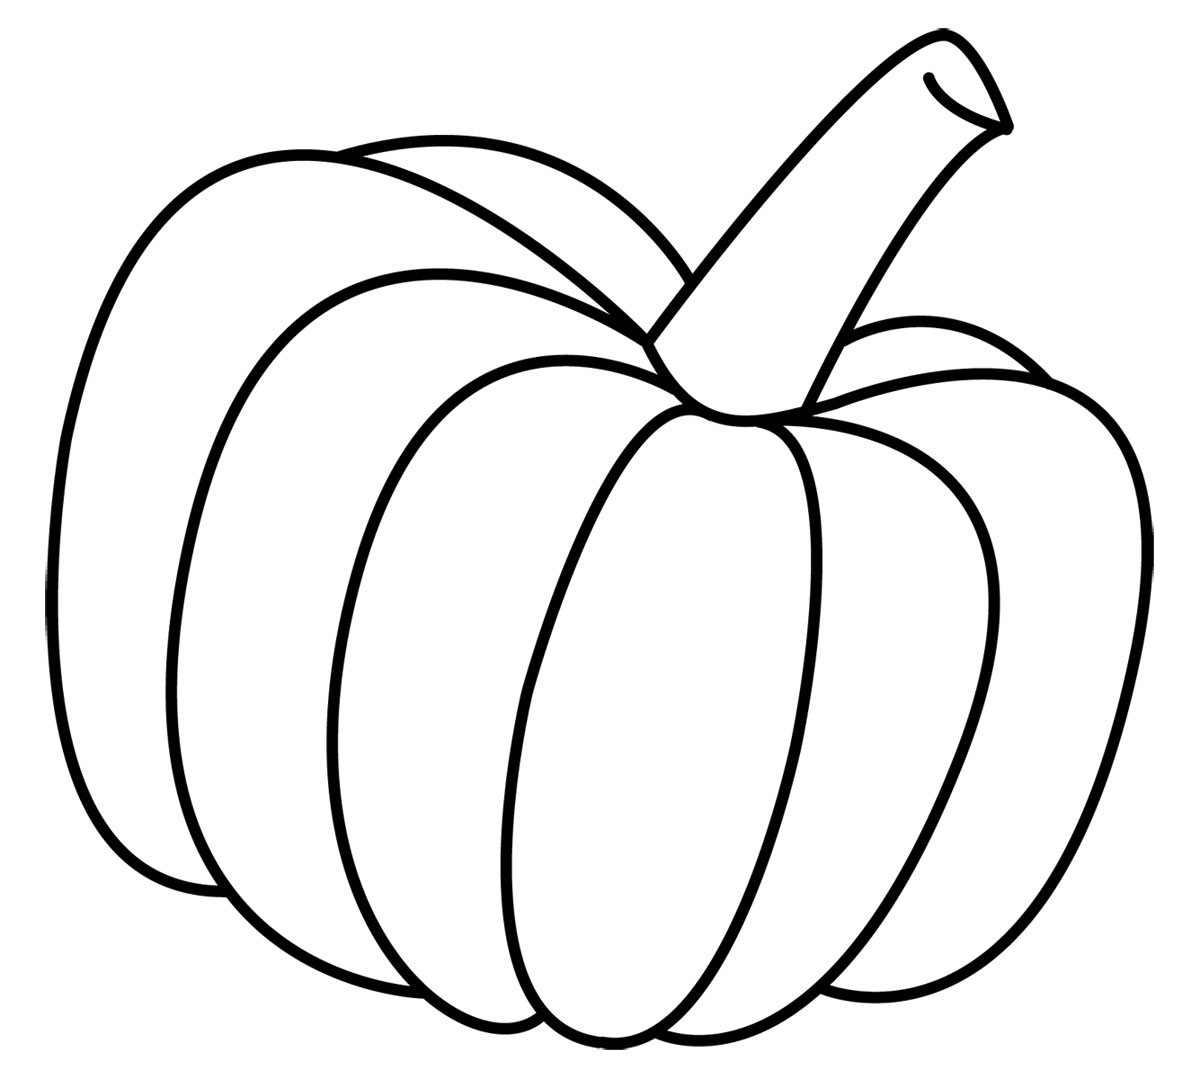 pumpkin clip art black and white clipart panda free clipart images rh clipartpanda com halloween pumpkin clipart black and white cute pumpkin clipart black and white